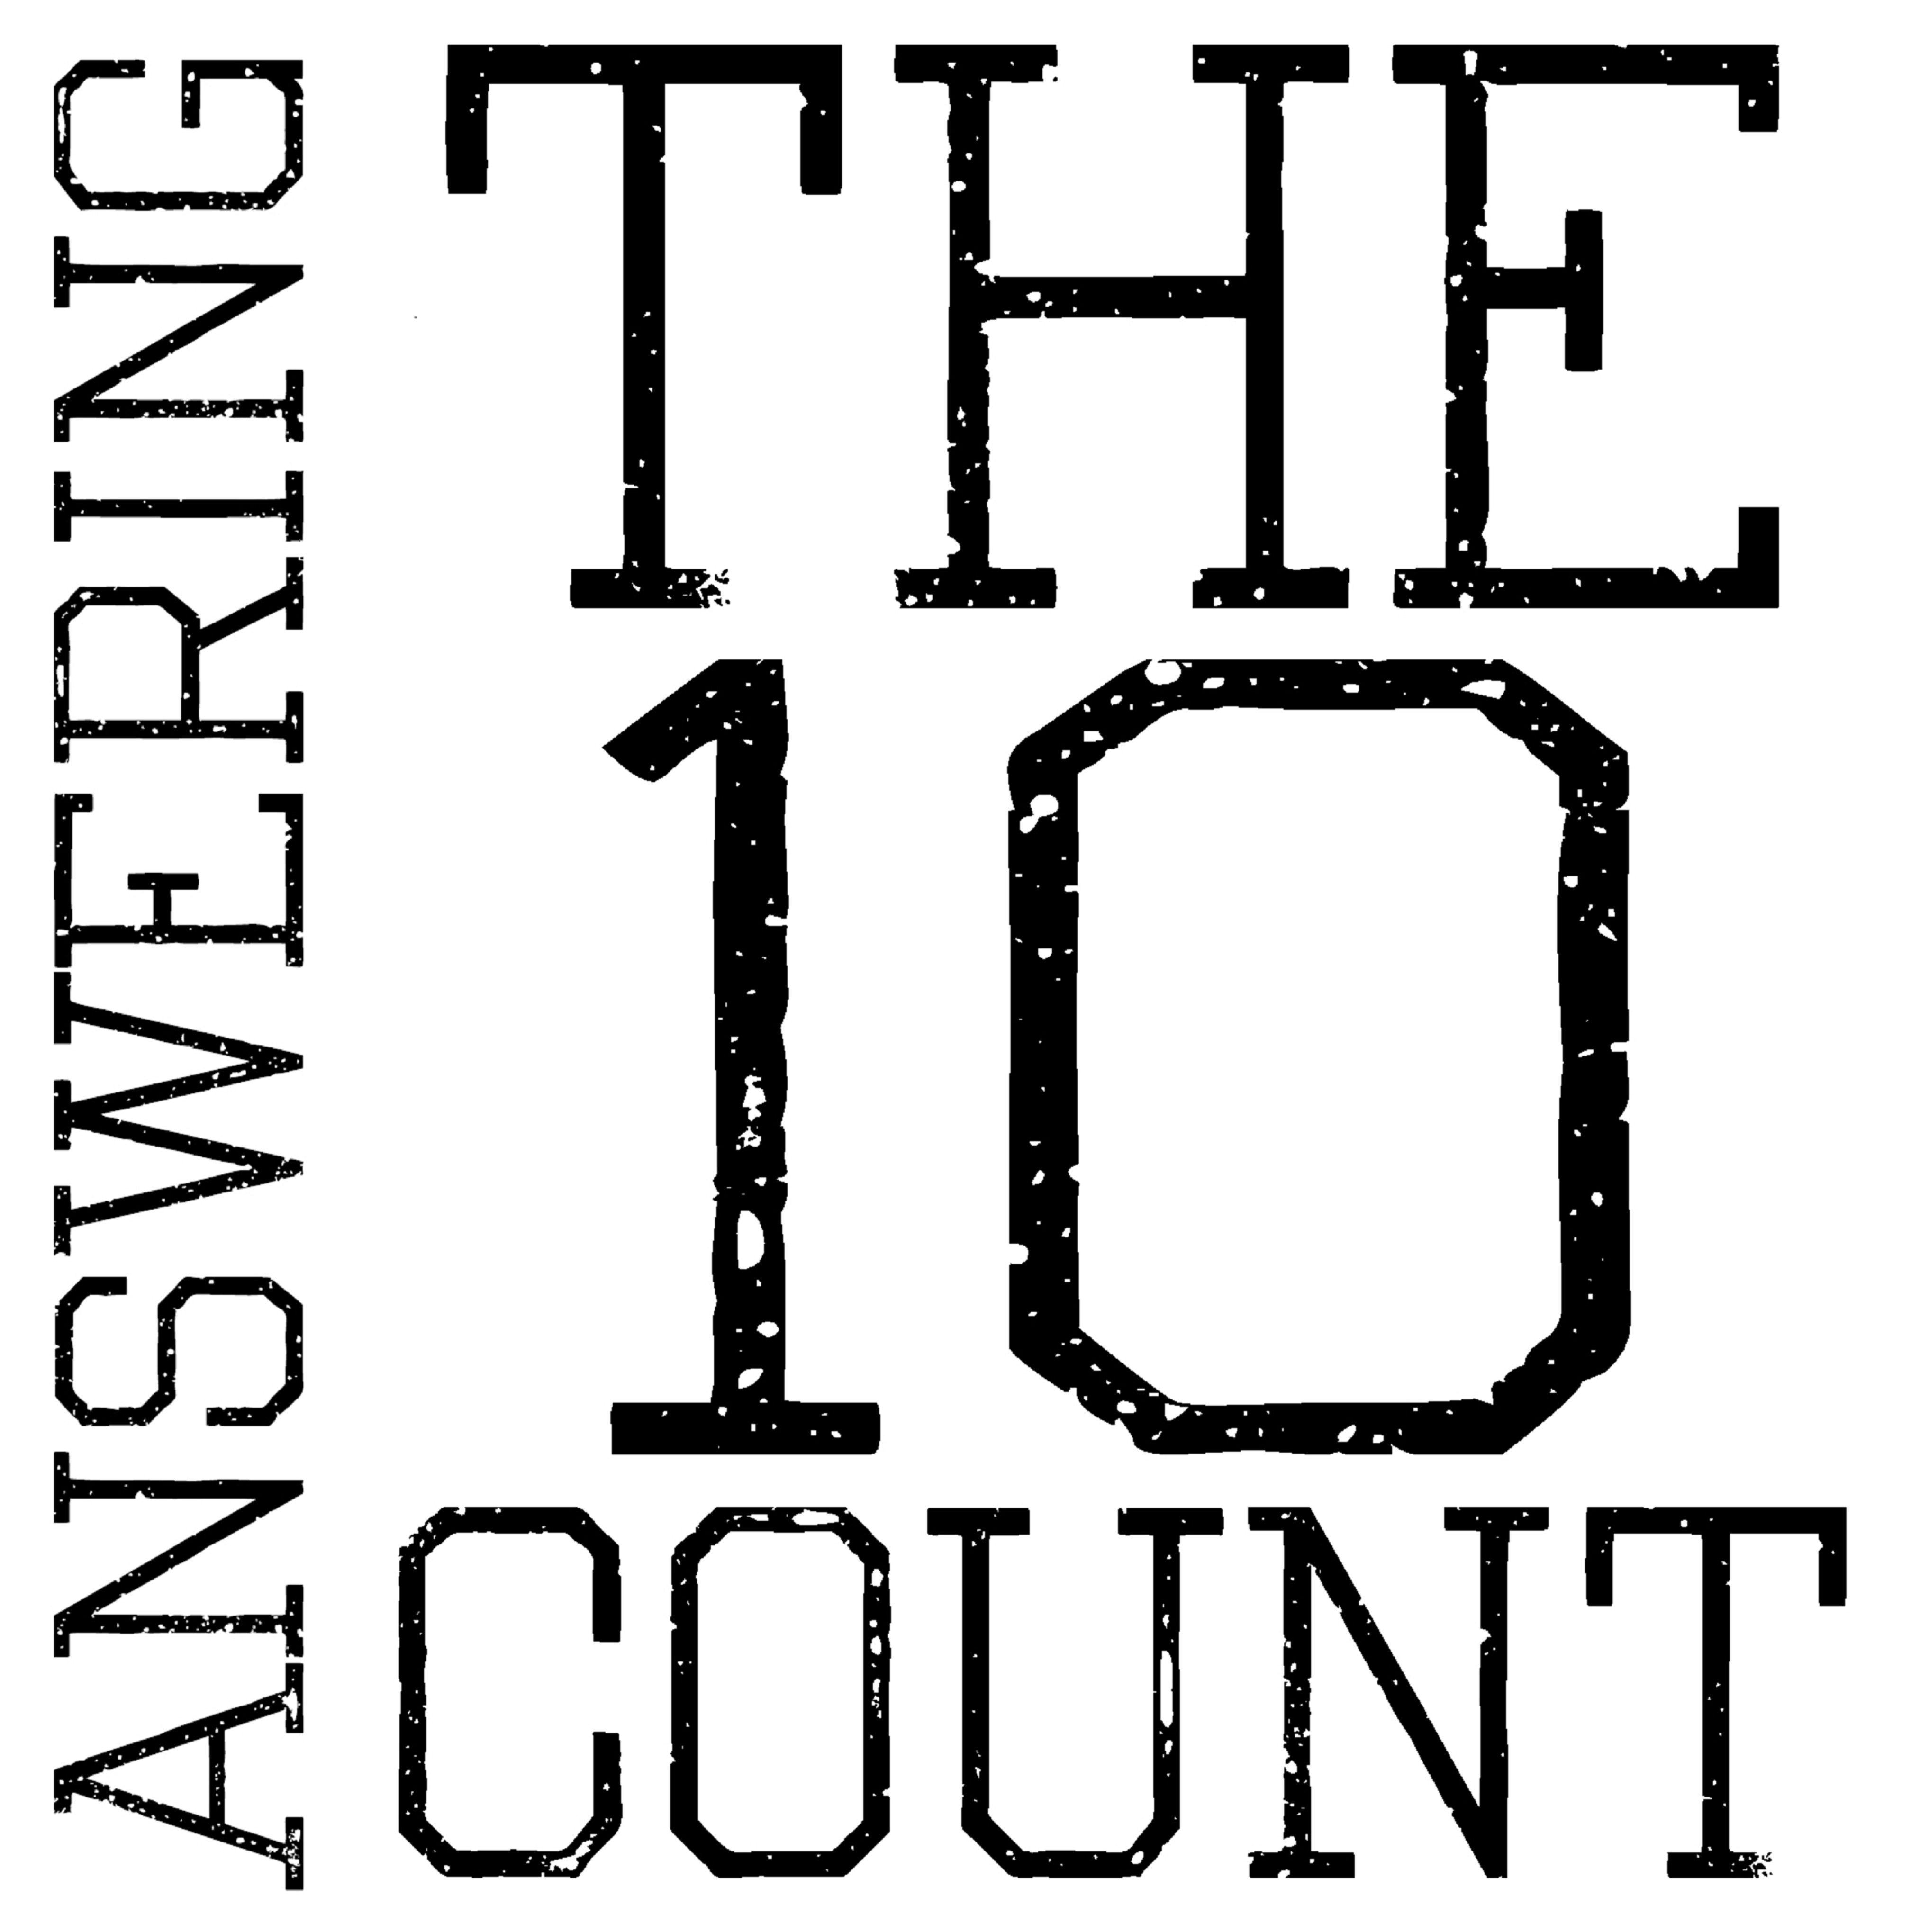 Answering The Ten Count